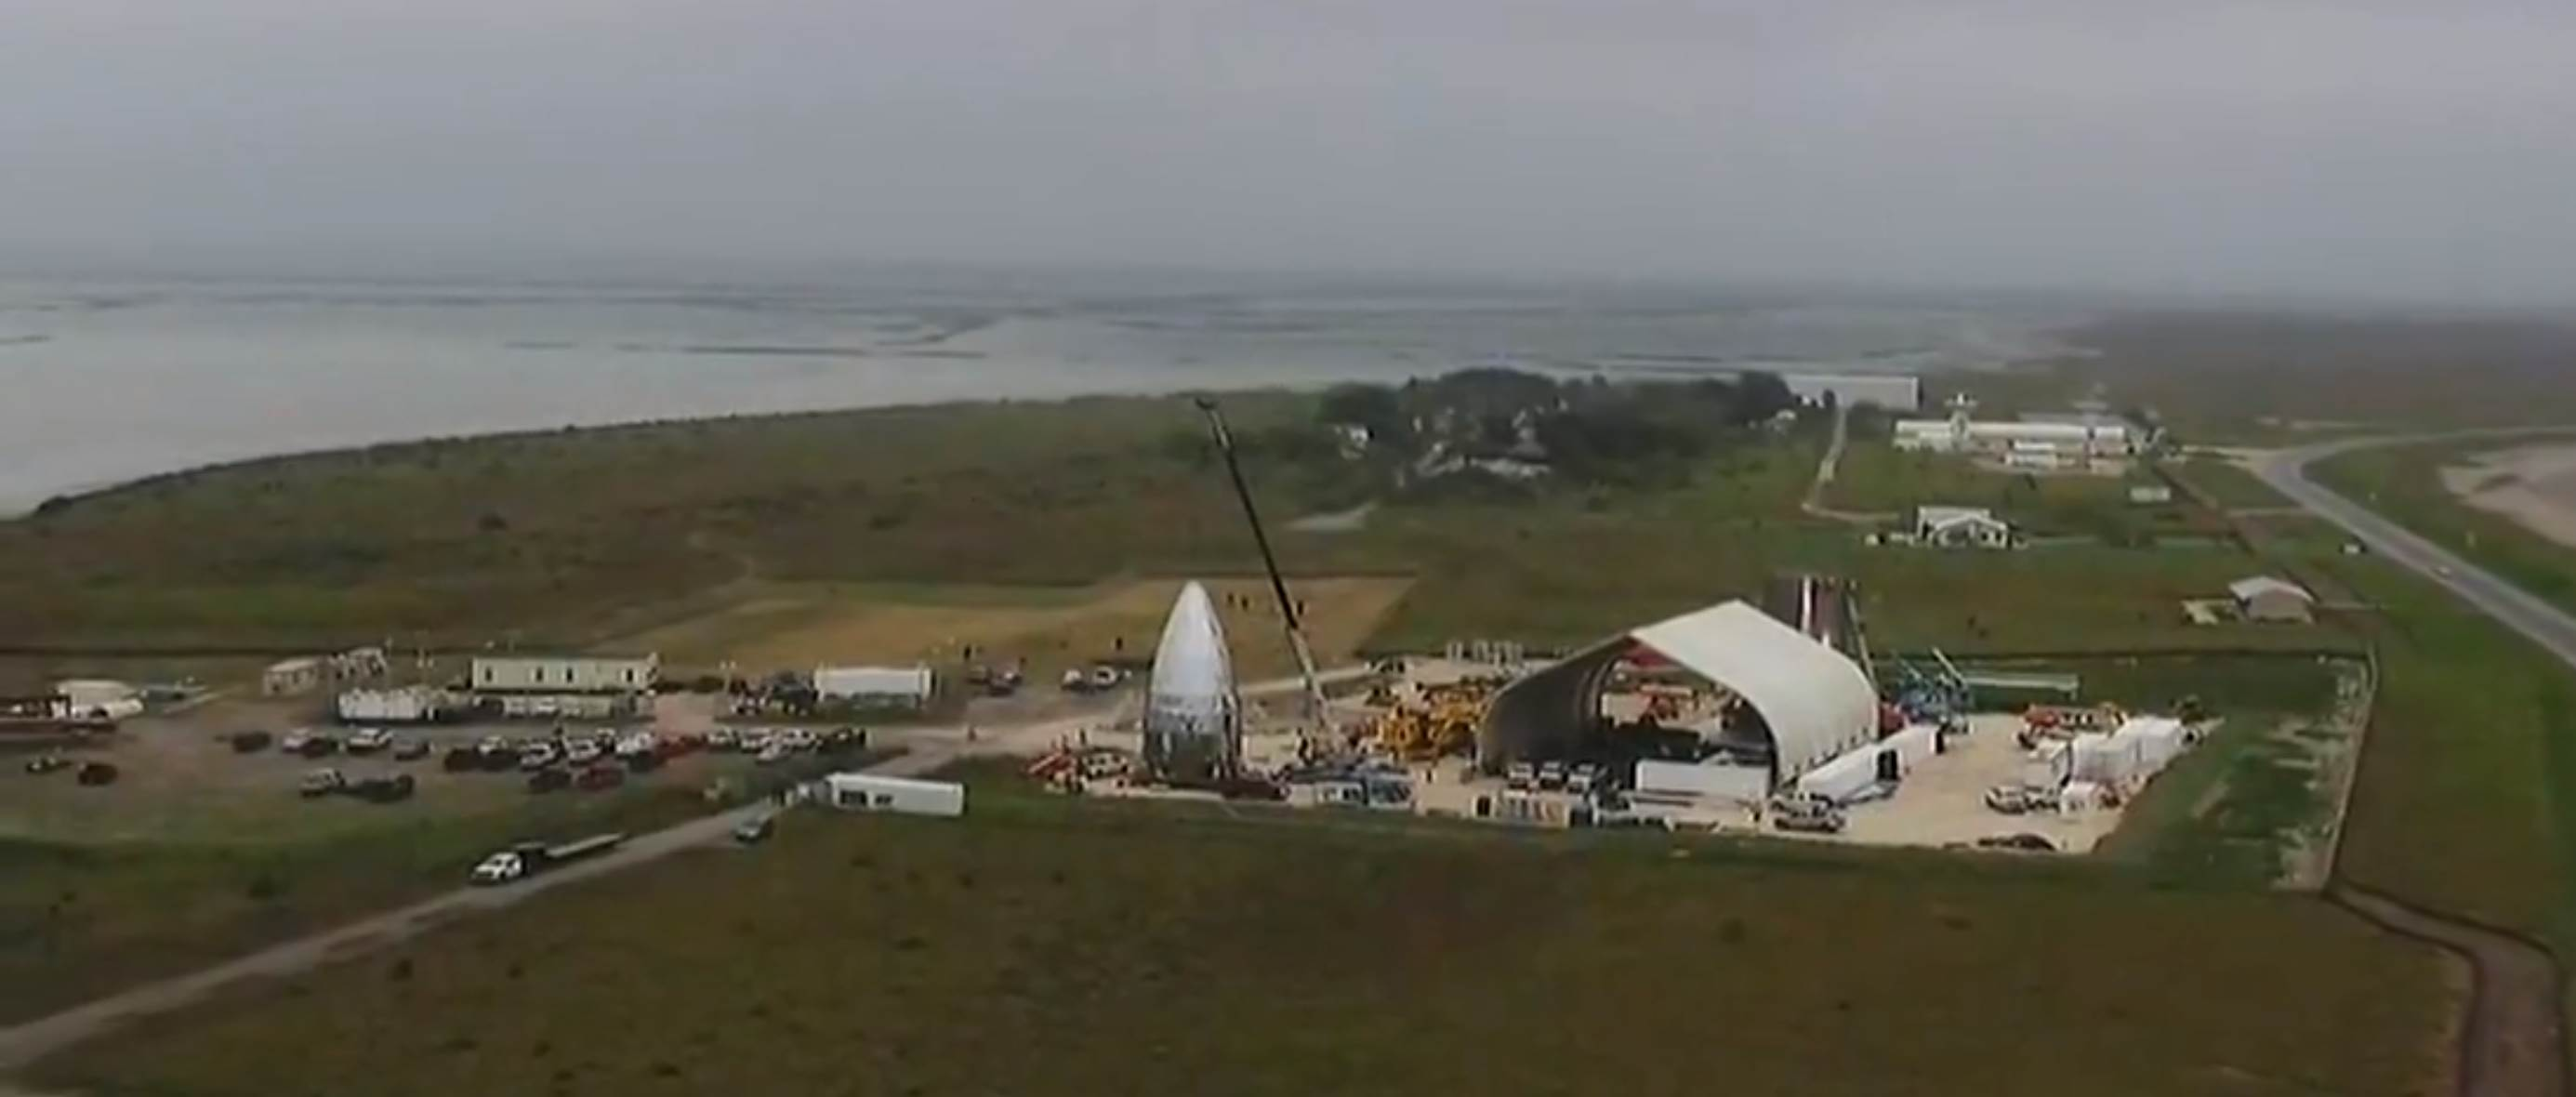 Boca Chica Starhopper progress overview 122818 (CBS4RGV) 5